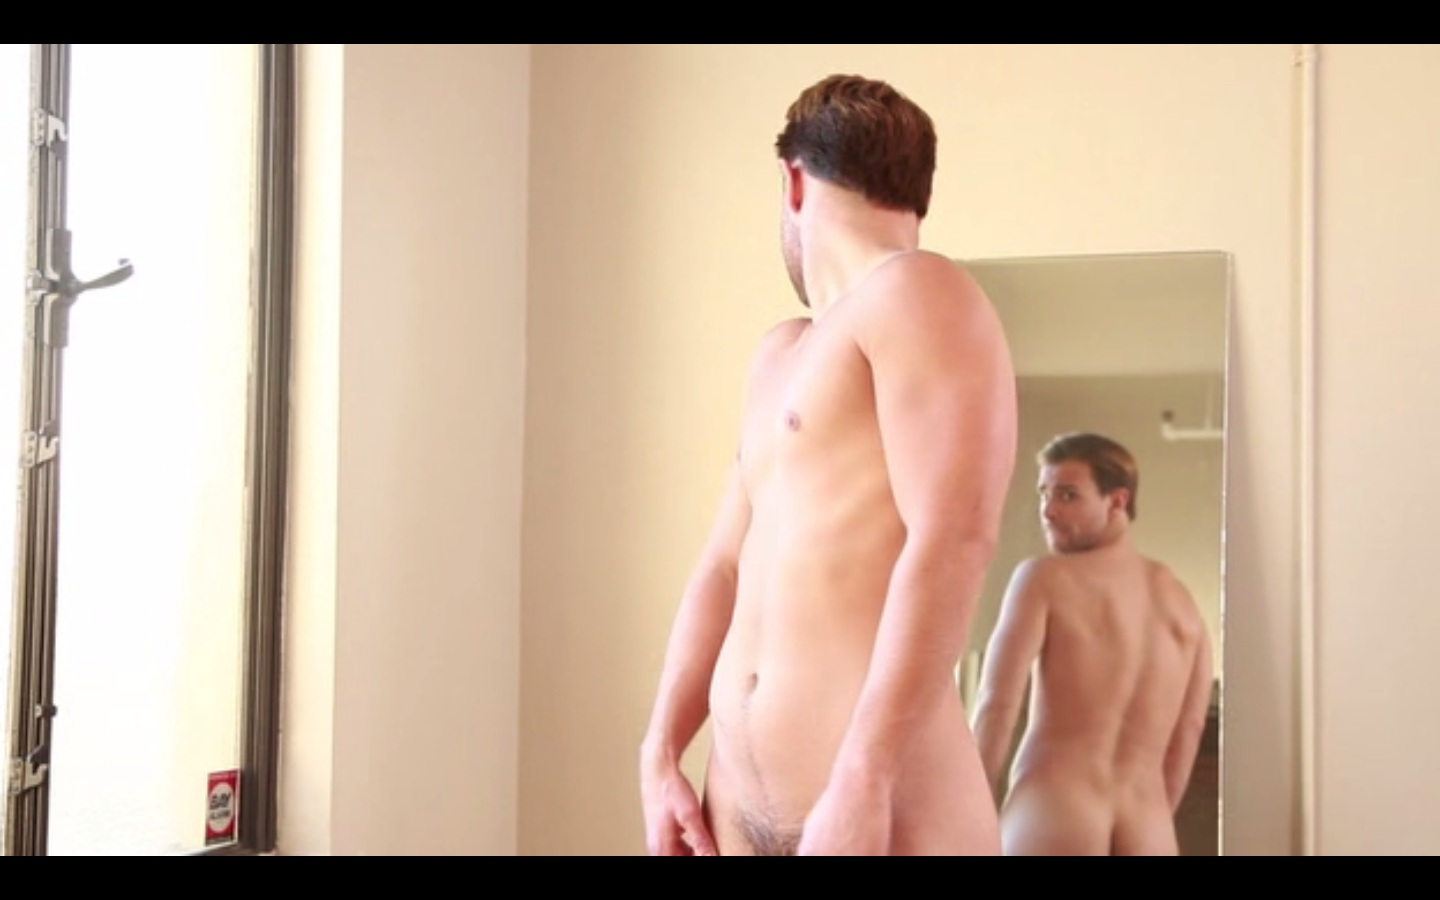 Best Kevin patrick naked